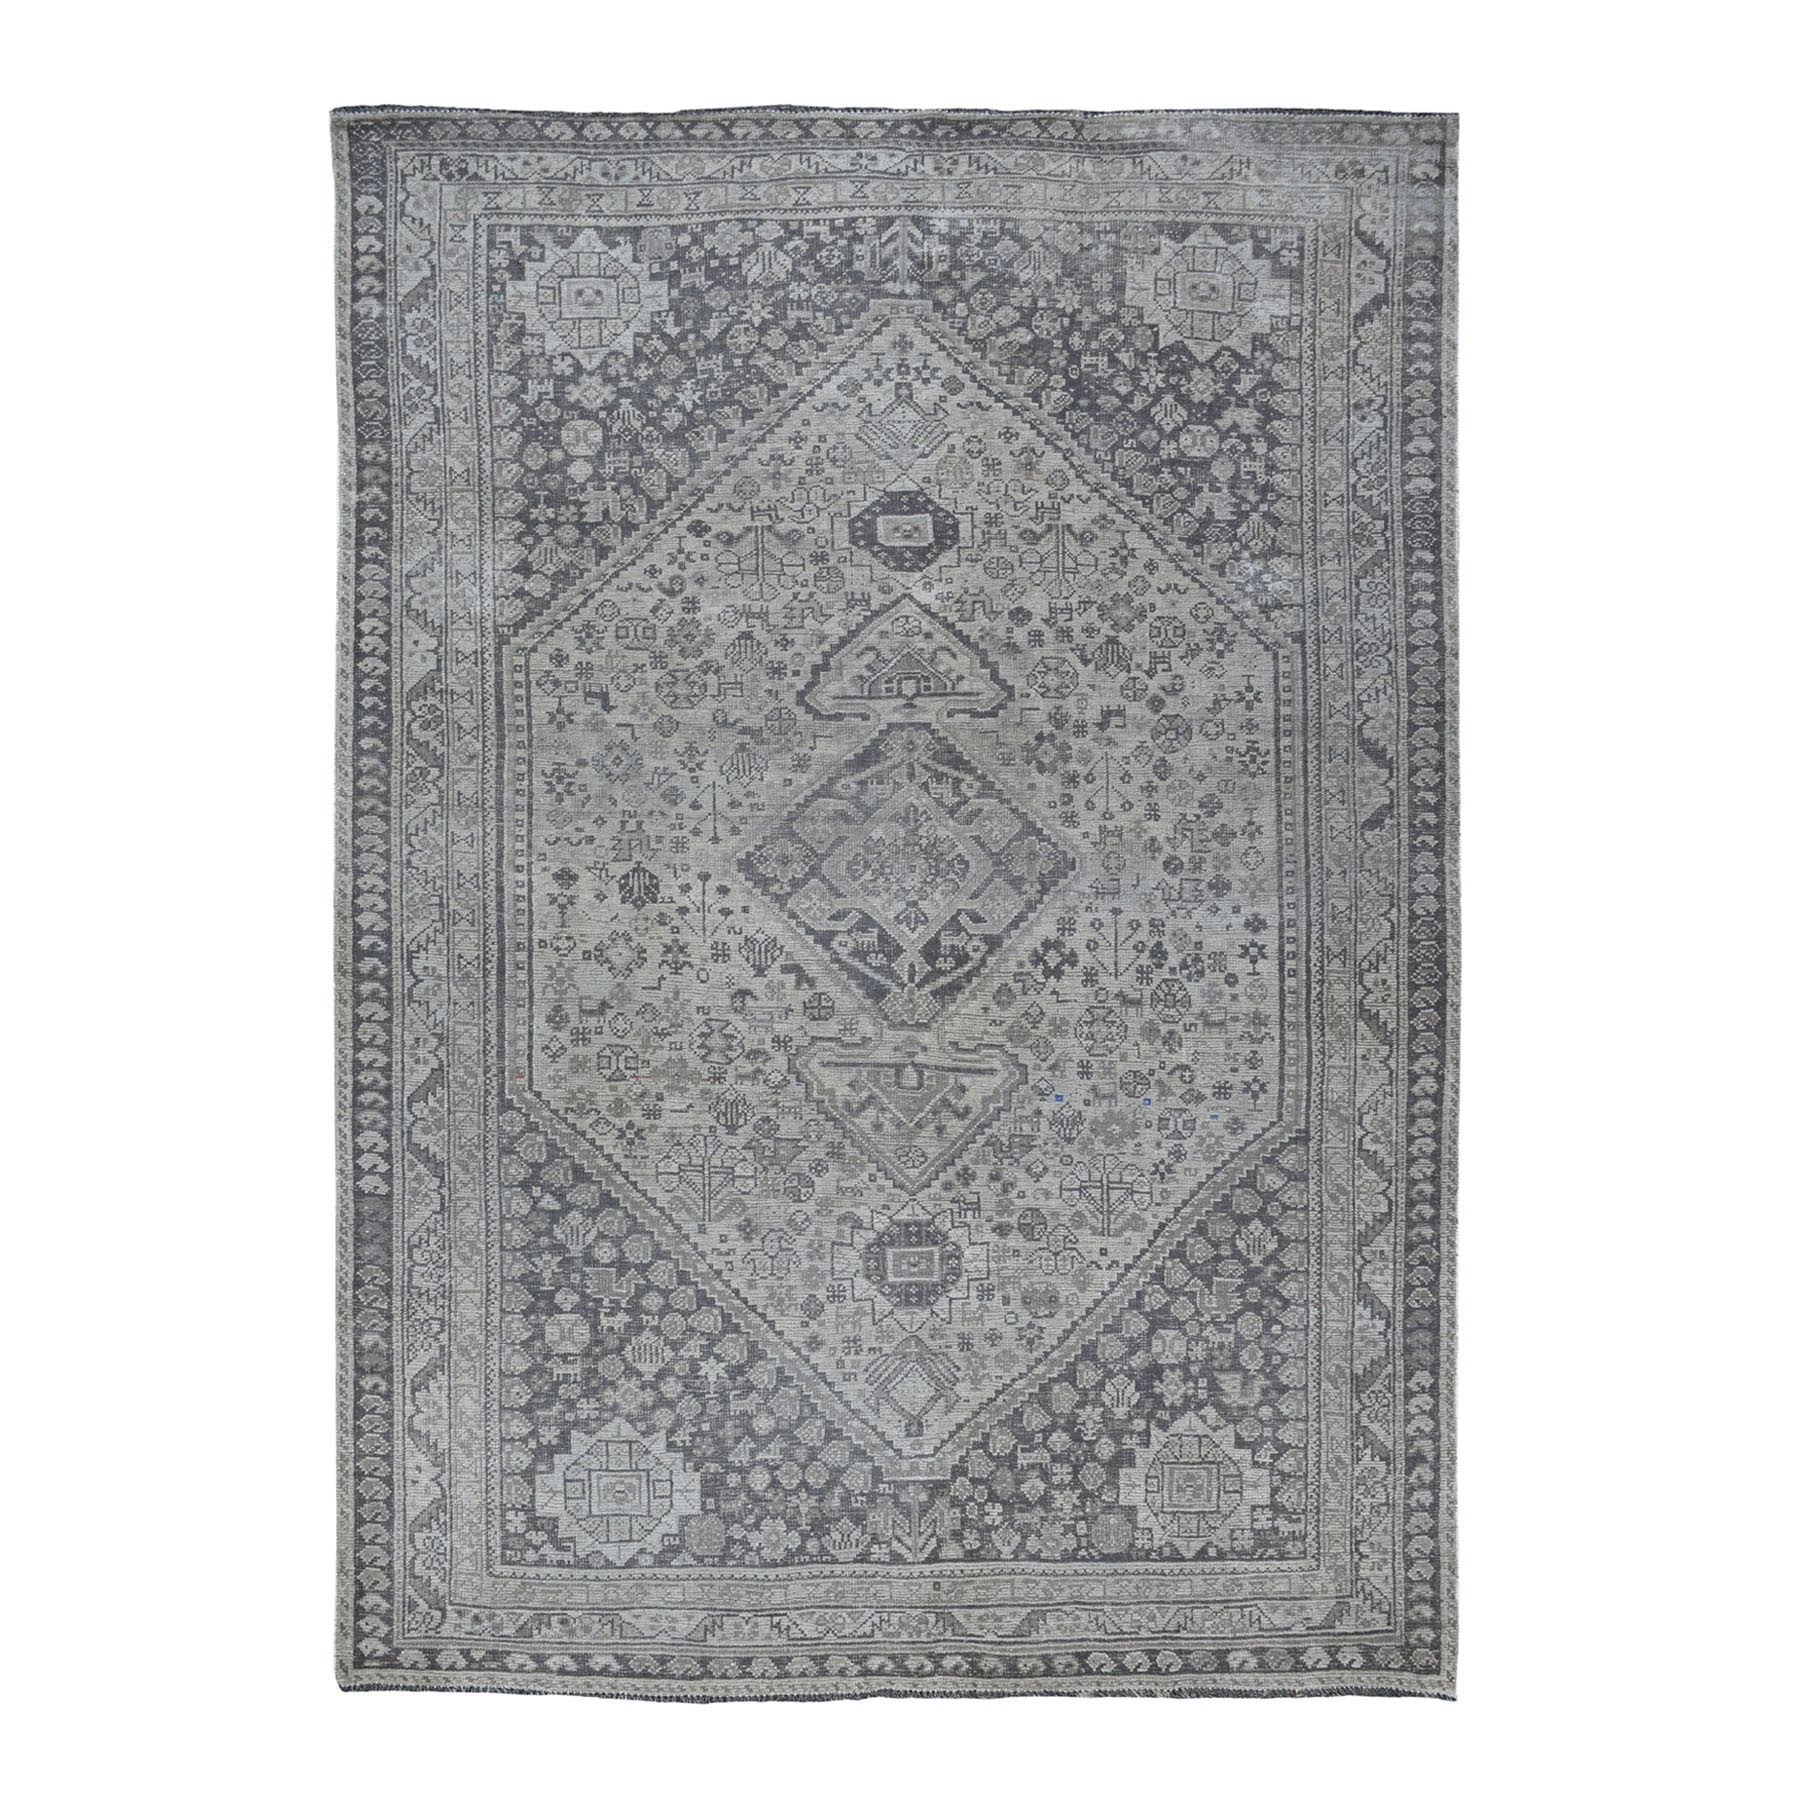 "6'10""x9'5"" Vintage And Worn Down Distressed Colors Persian Shiraz Hand Woven Bohemian Rug"